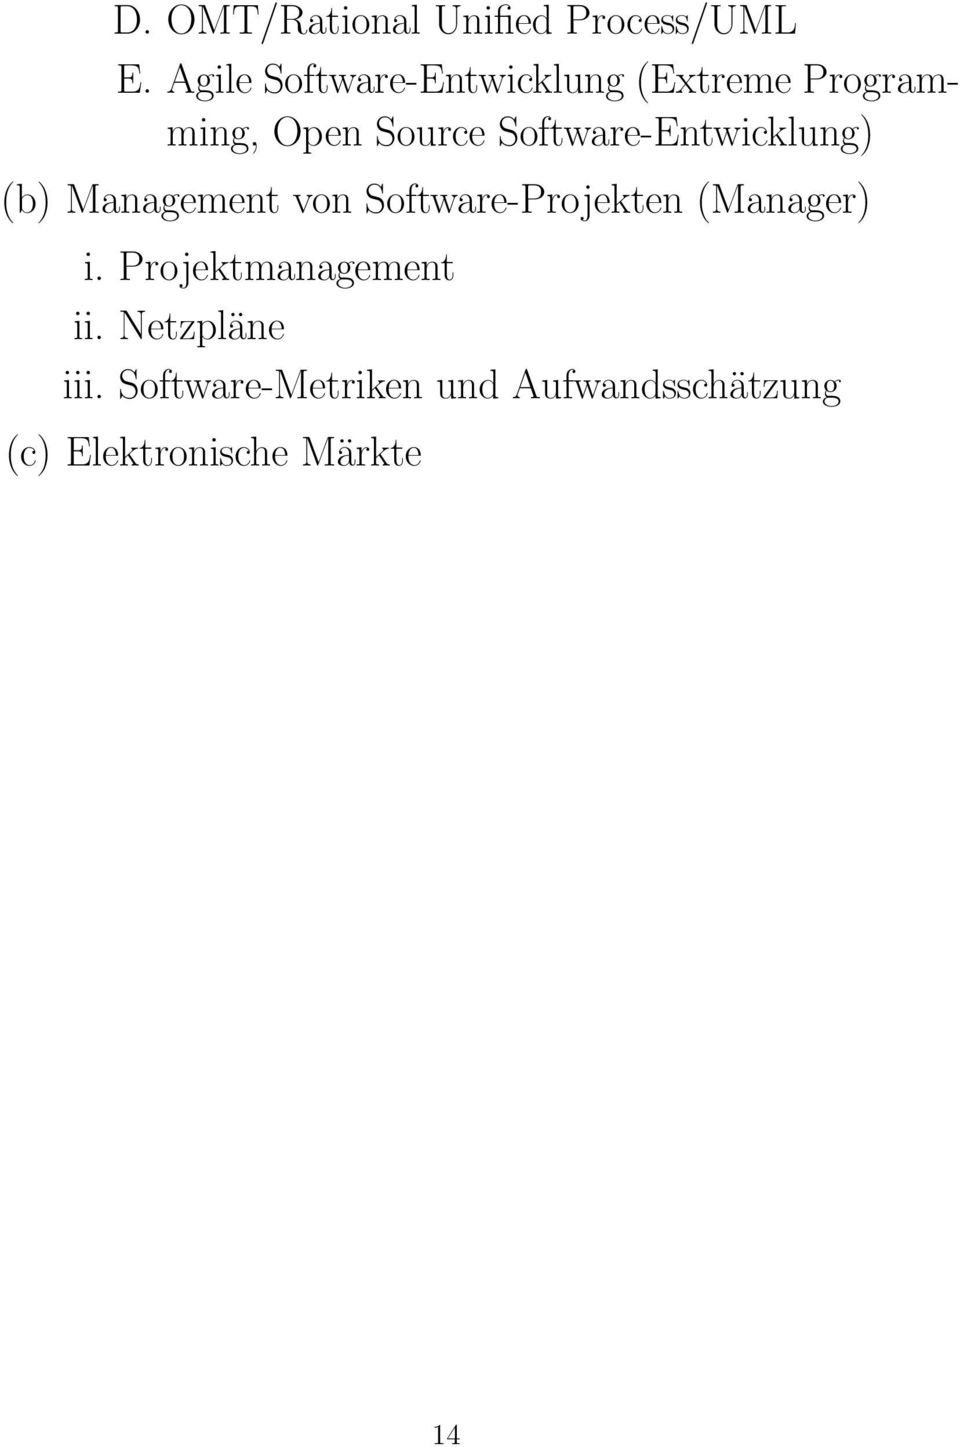 Software-Entwicklung) (b) Management von Software-Projekten (Manager)